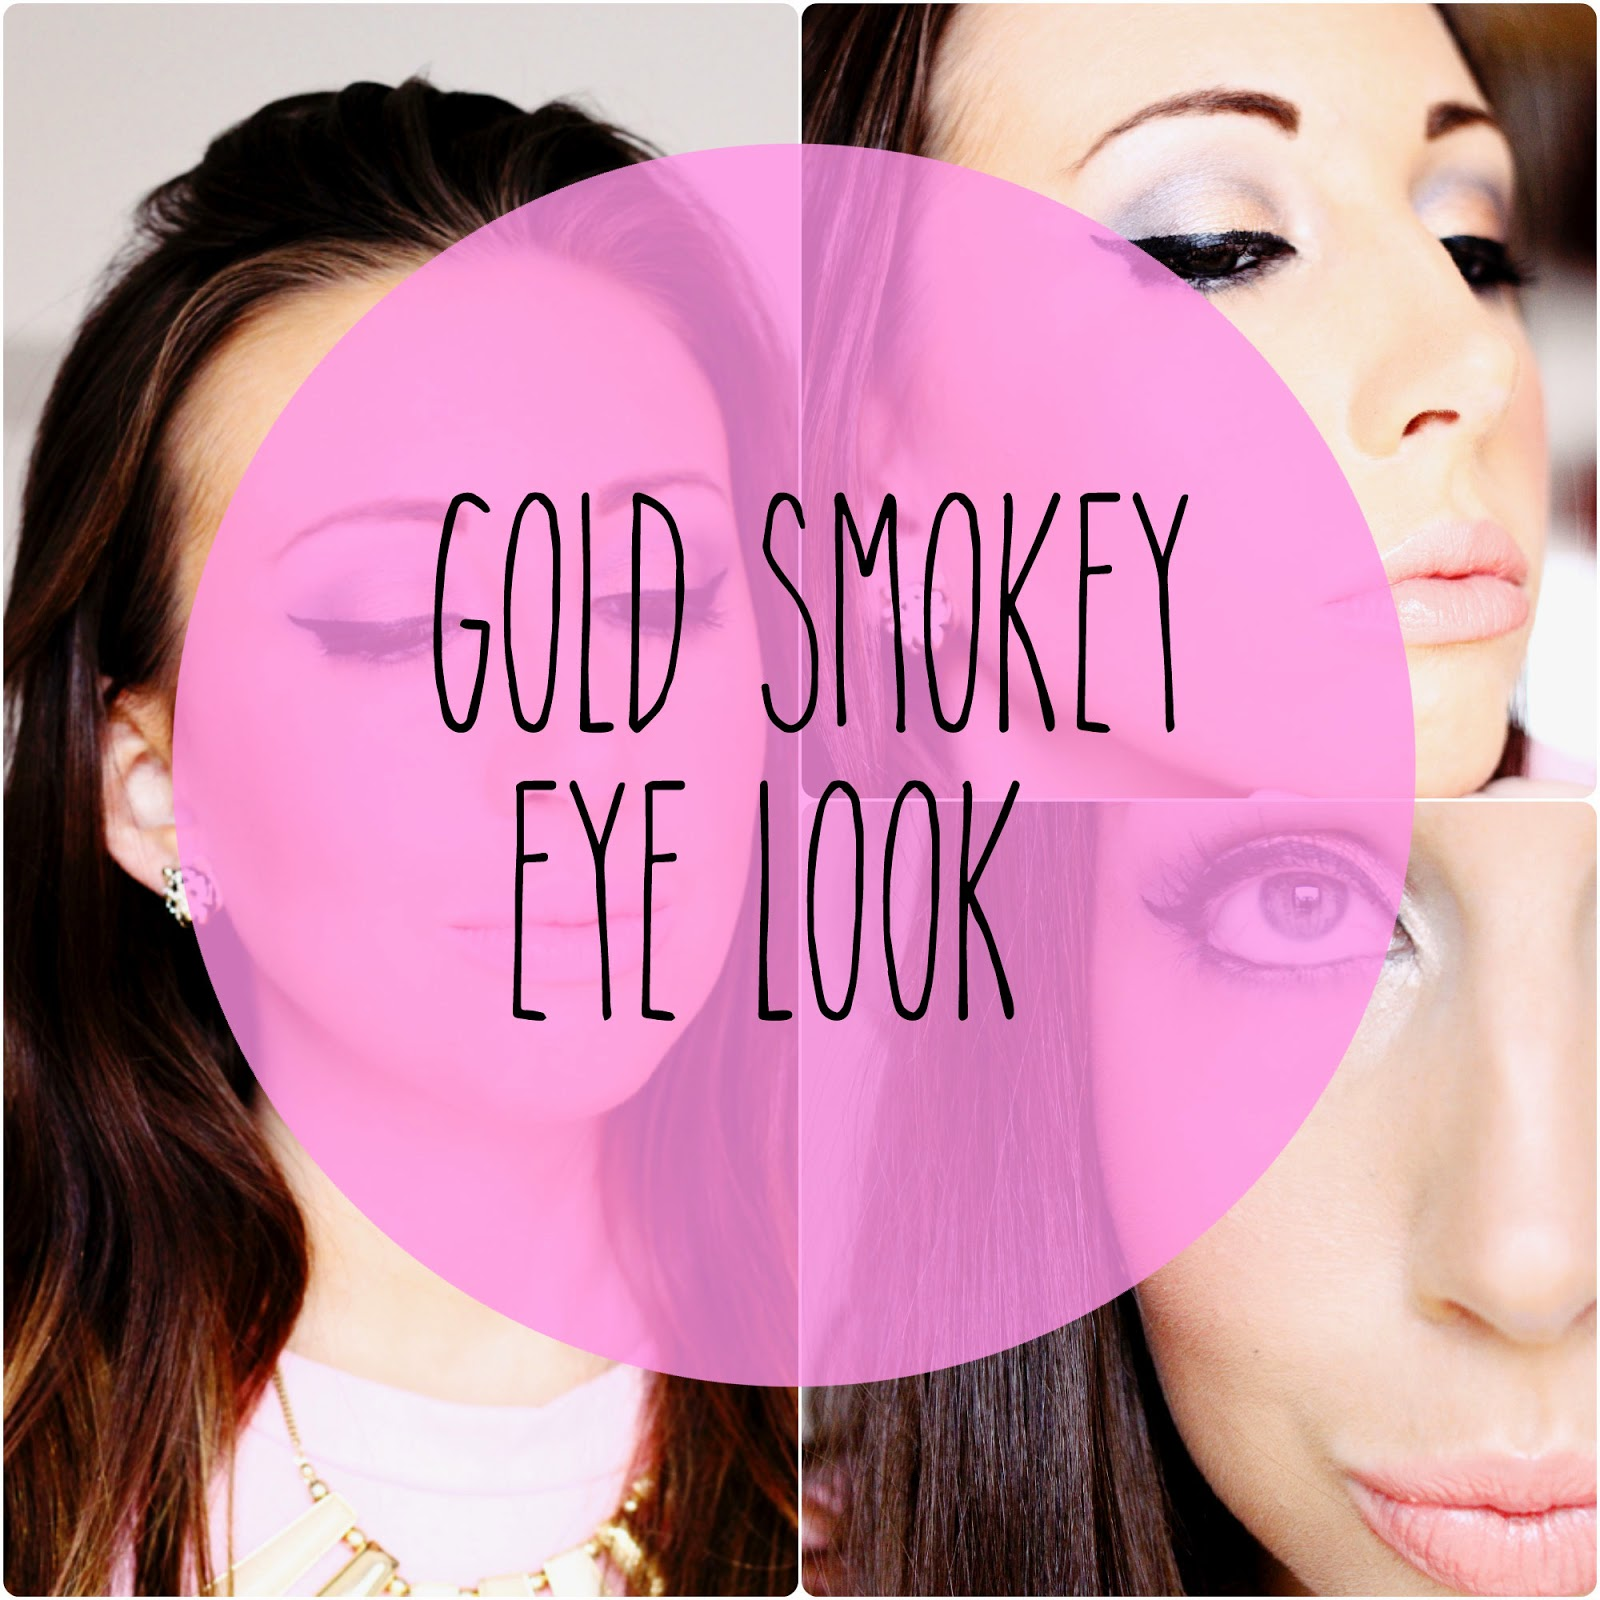 Smokey-eye-look-mua-maybelline-gel-eyeliner-swatch-undress-me-2-palette-makeup-make-up-look-